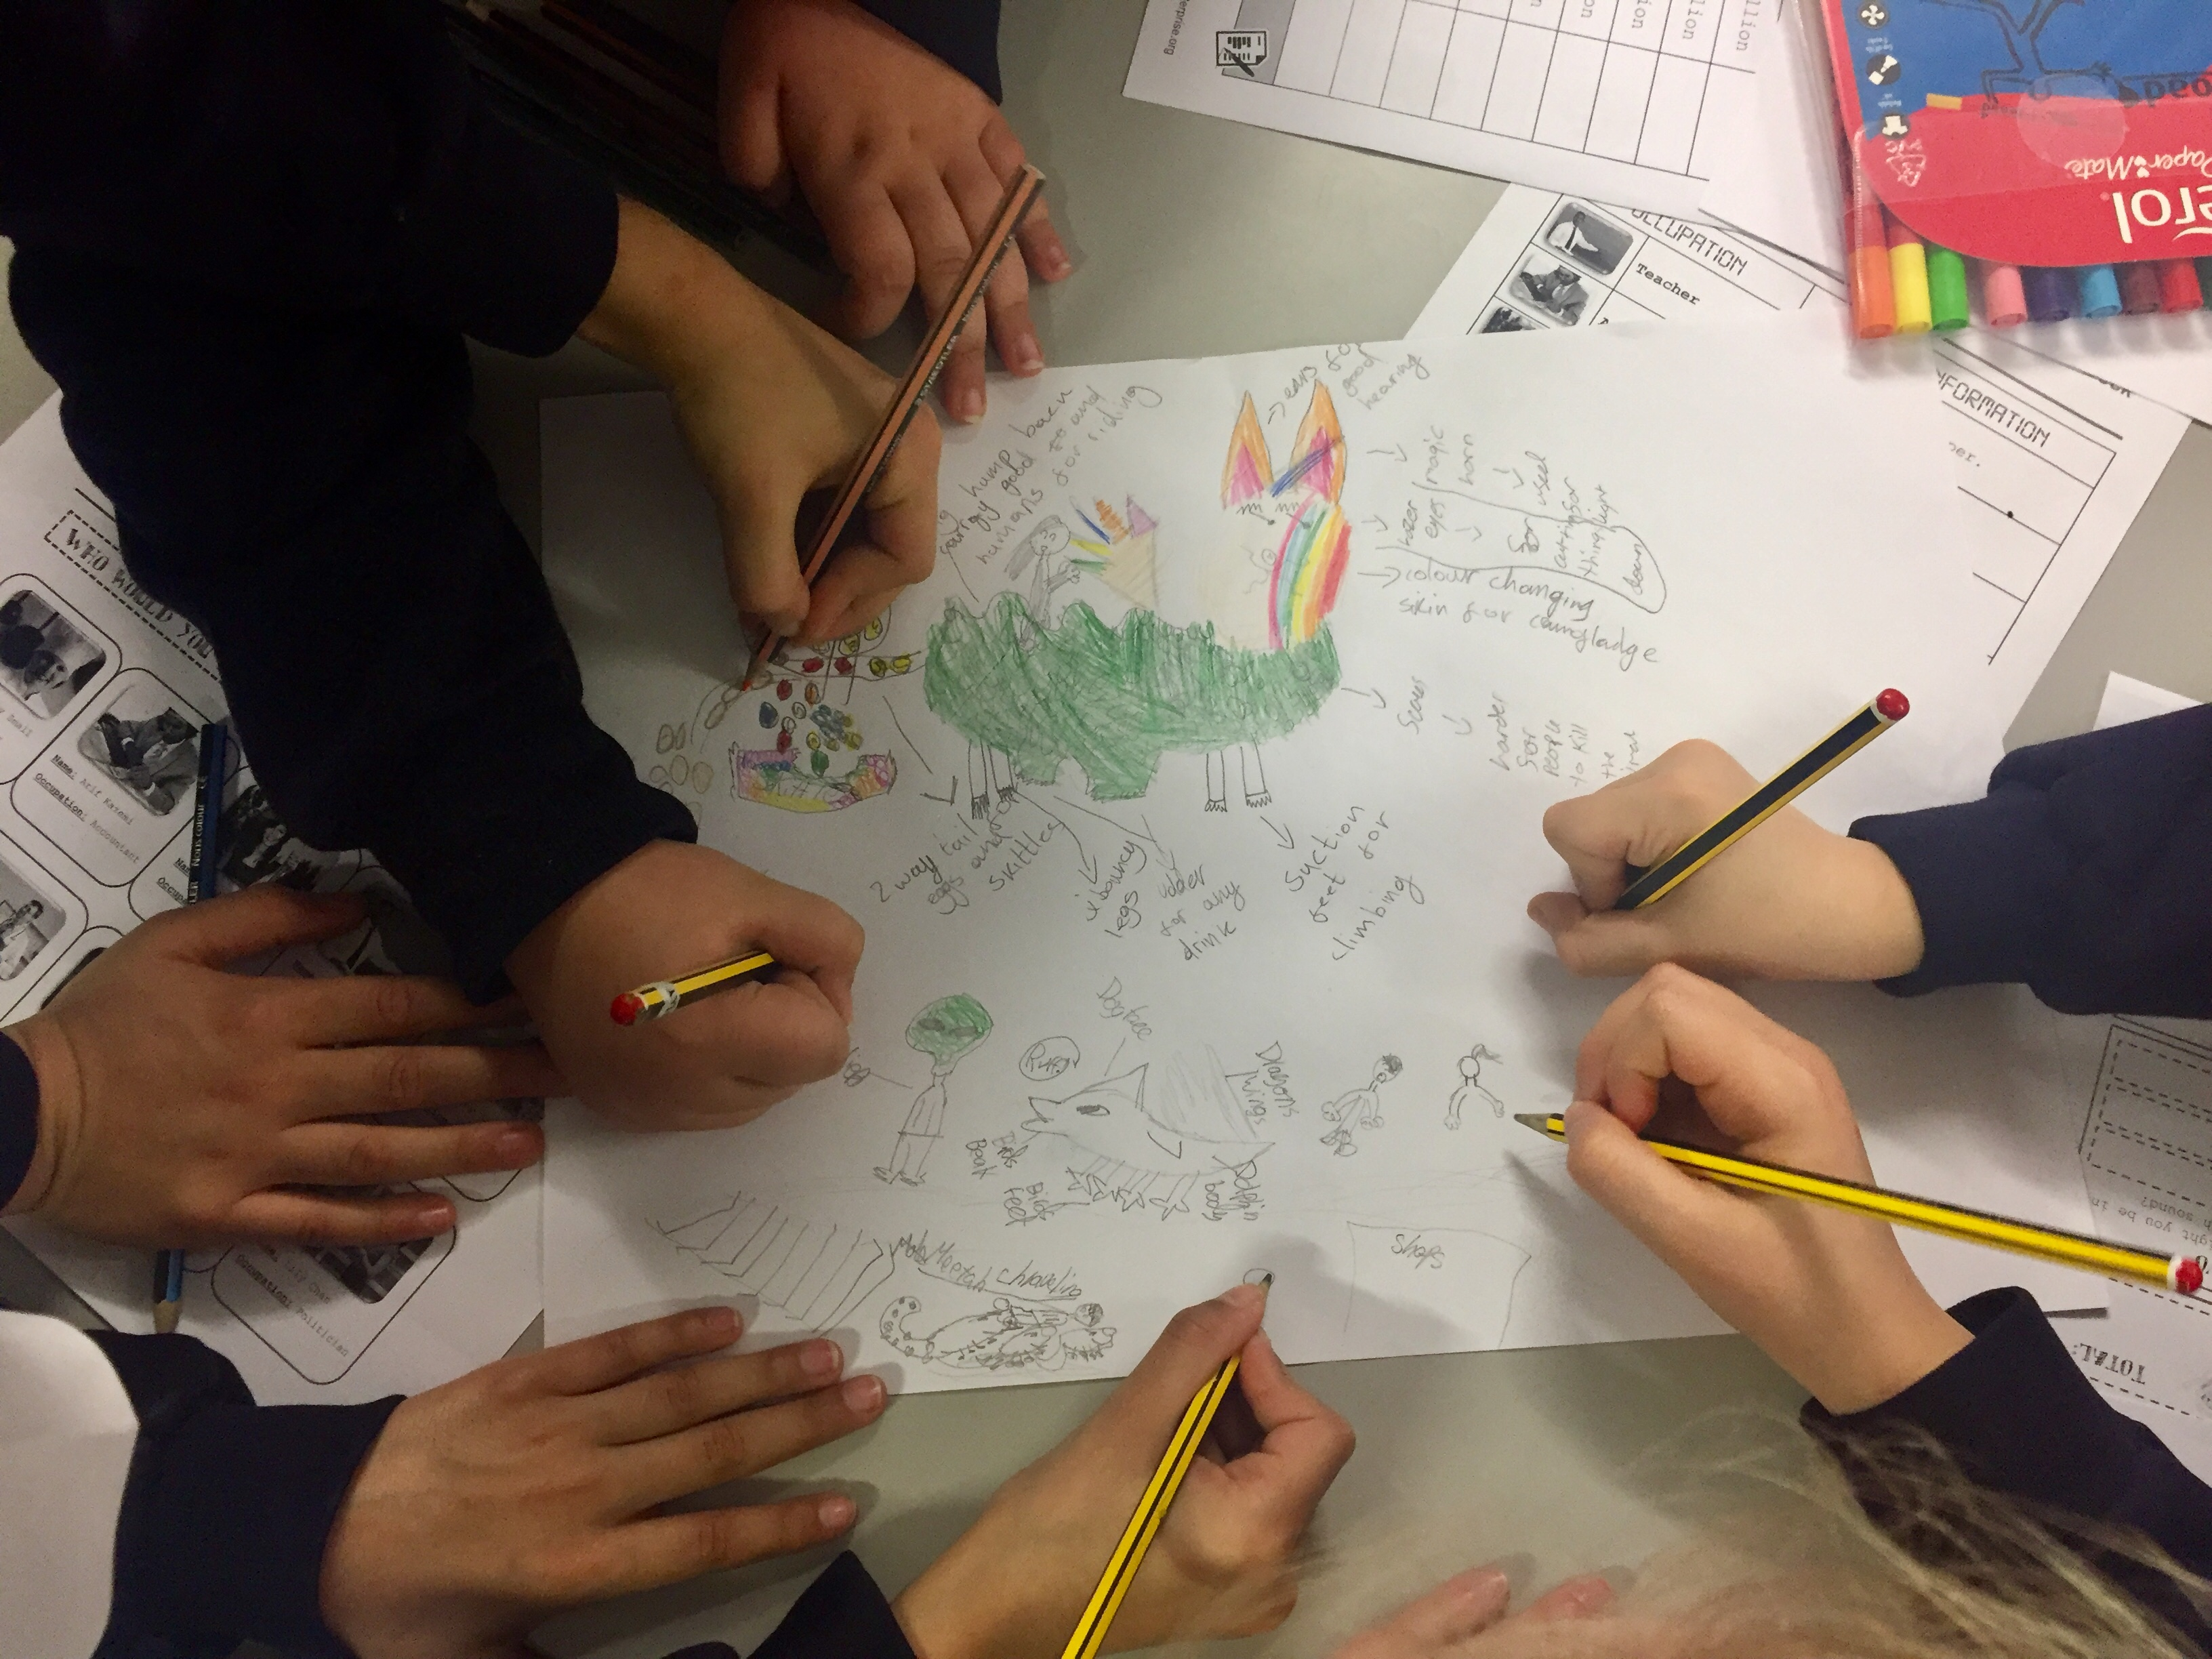 Teamwork and Creativity in action at Lea Valley Primary as teams design the most imaginative animals that could be helpful in their new societies.